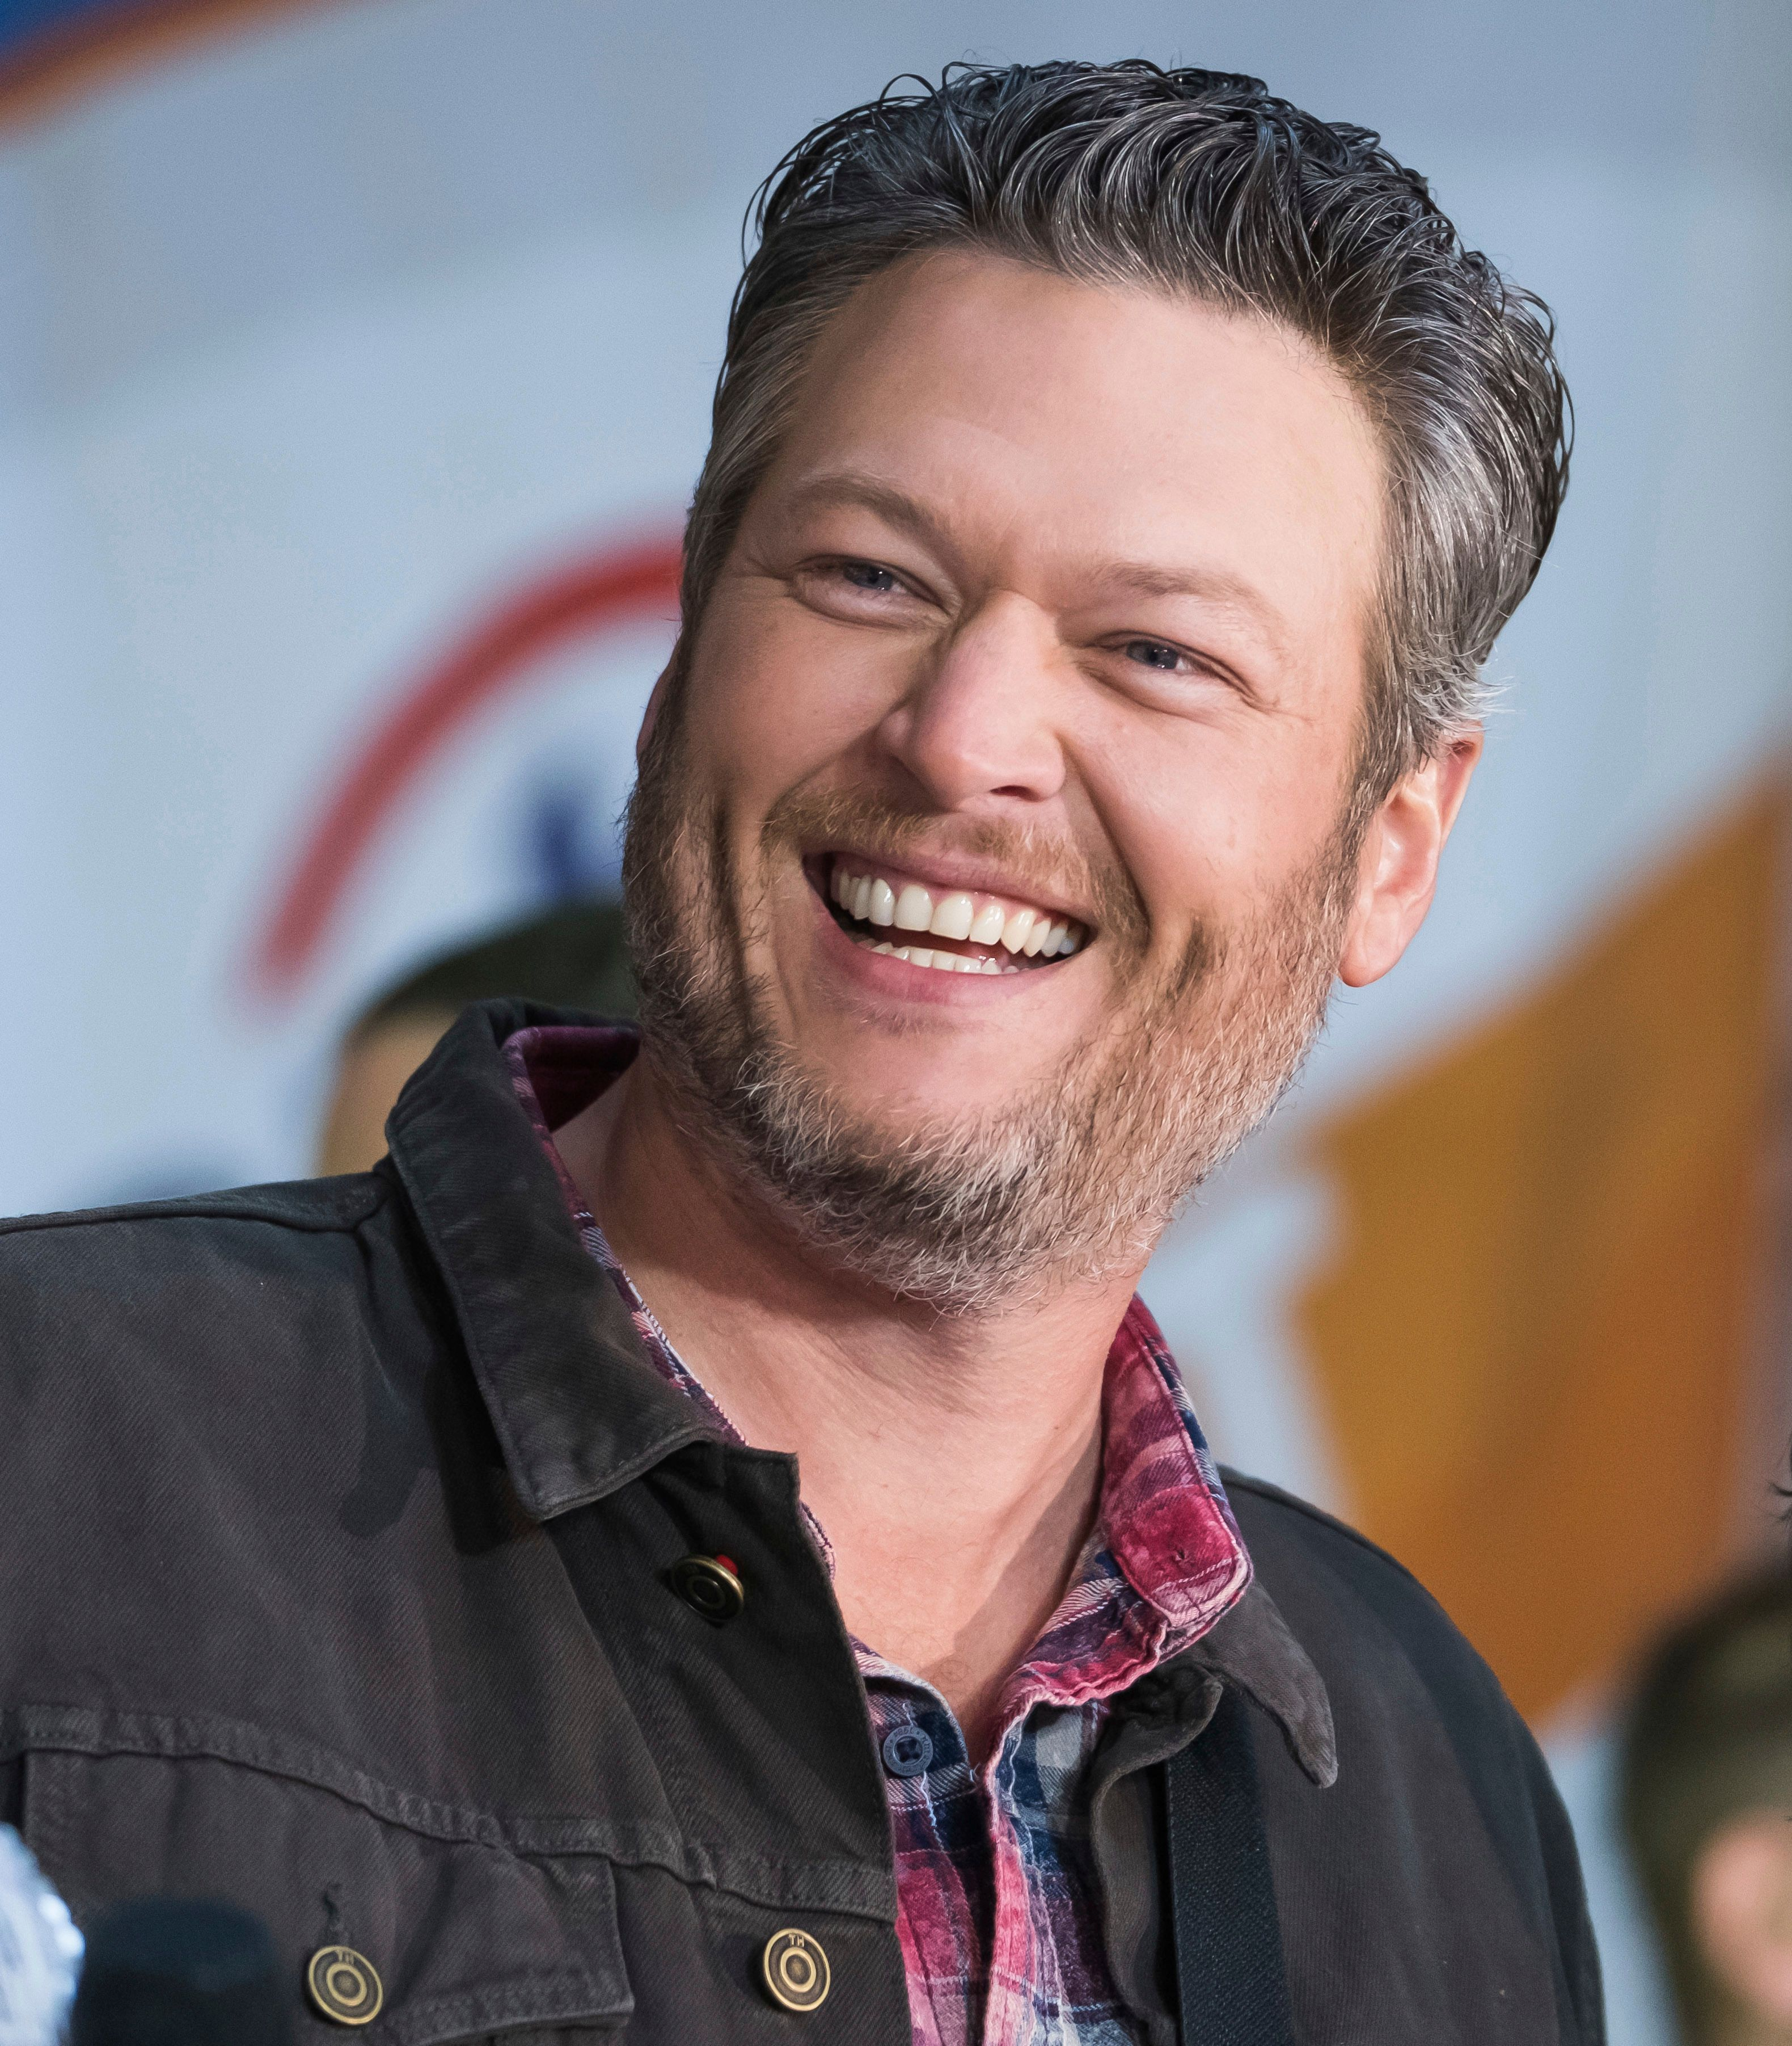 Blake Shelton? What? Twitter is unsure about 'People's Sexiest Man Alive'